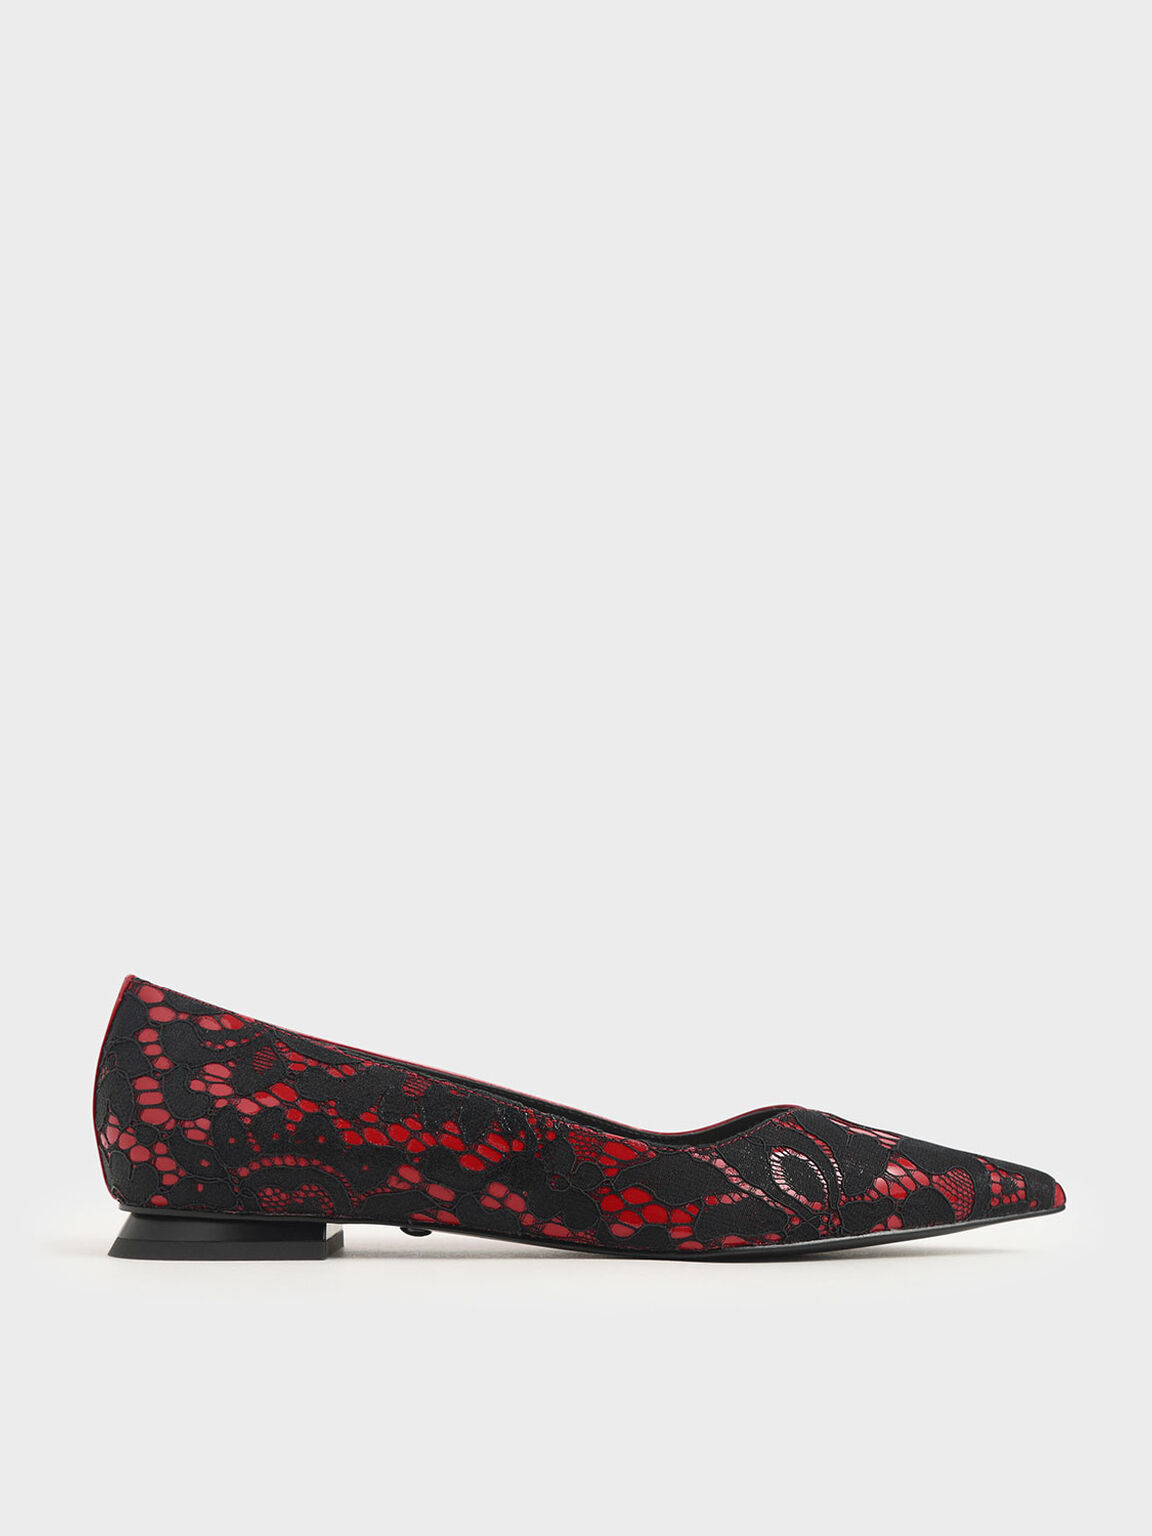 Patent Leather Lace Ballerina Flats, Red, hi-res